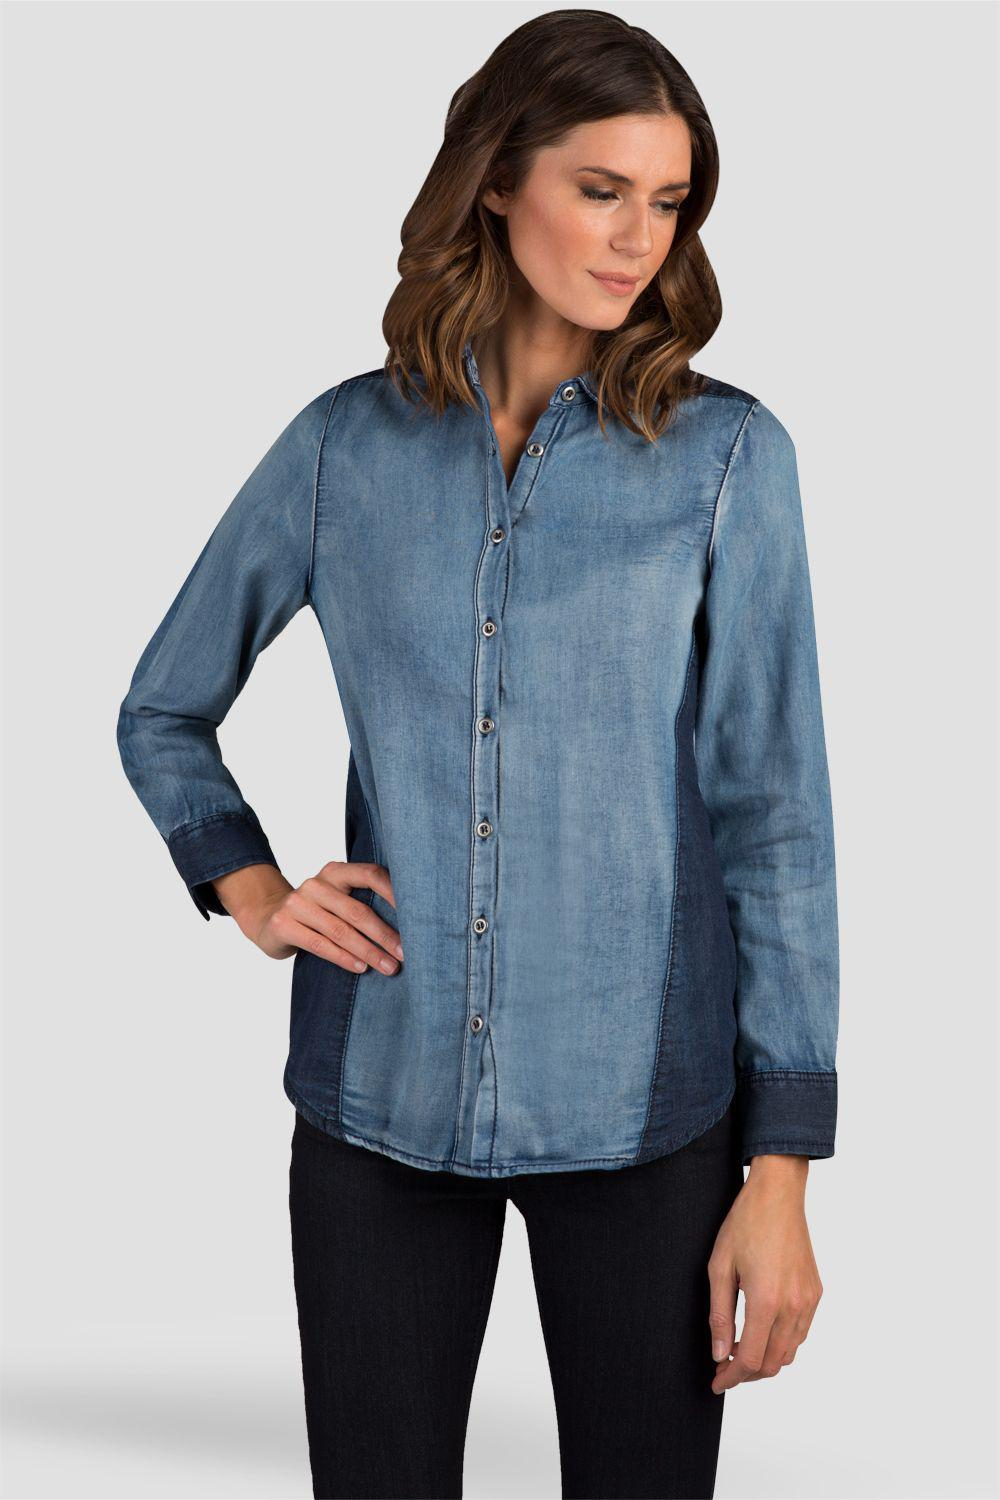 Laney Two Toned Chambray Denim Button Front Shirts